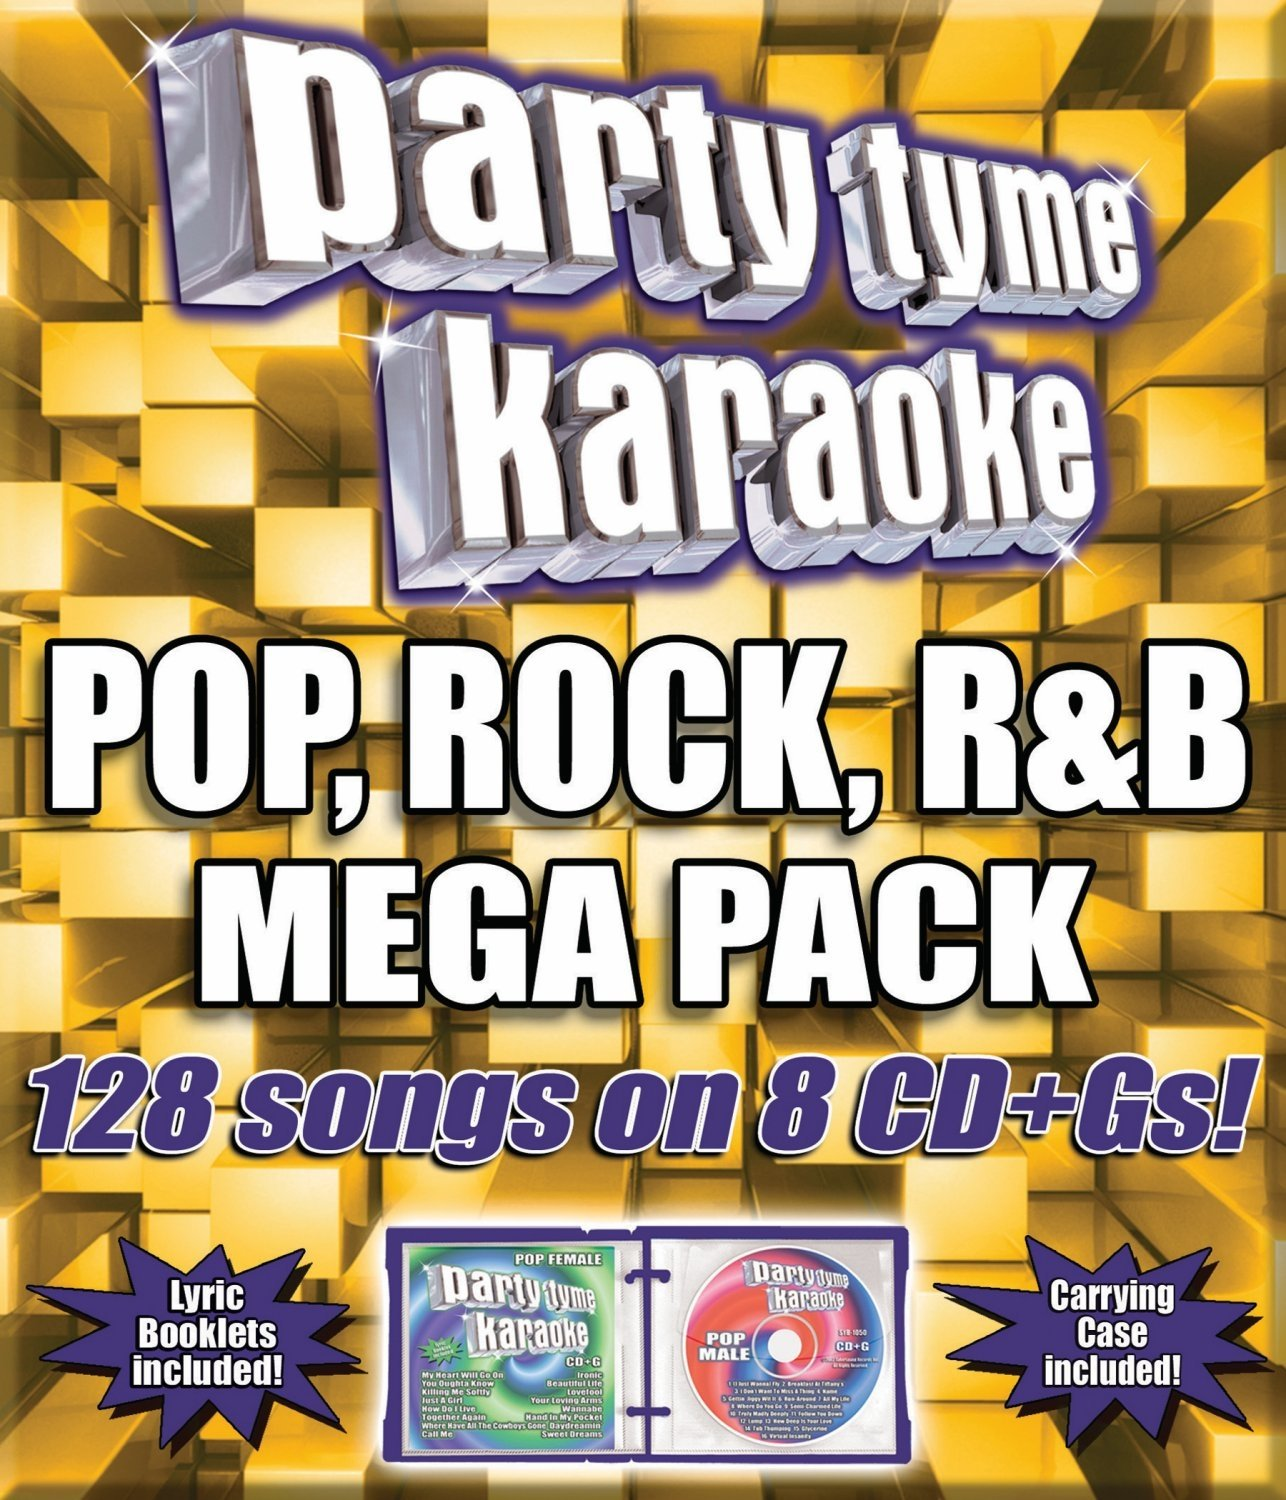 Party Tyme Karaoke - Pop, Rock, R&B Mega Pack (128-song Mega Pack) [8 CD] by SYBERSOUND